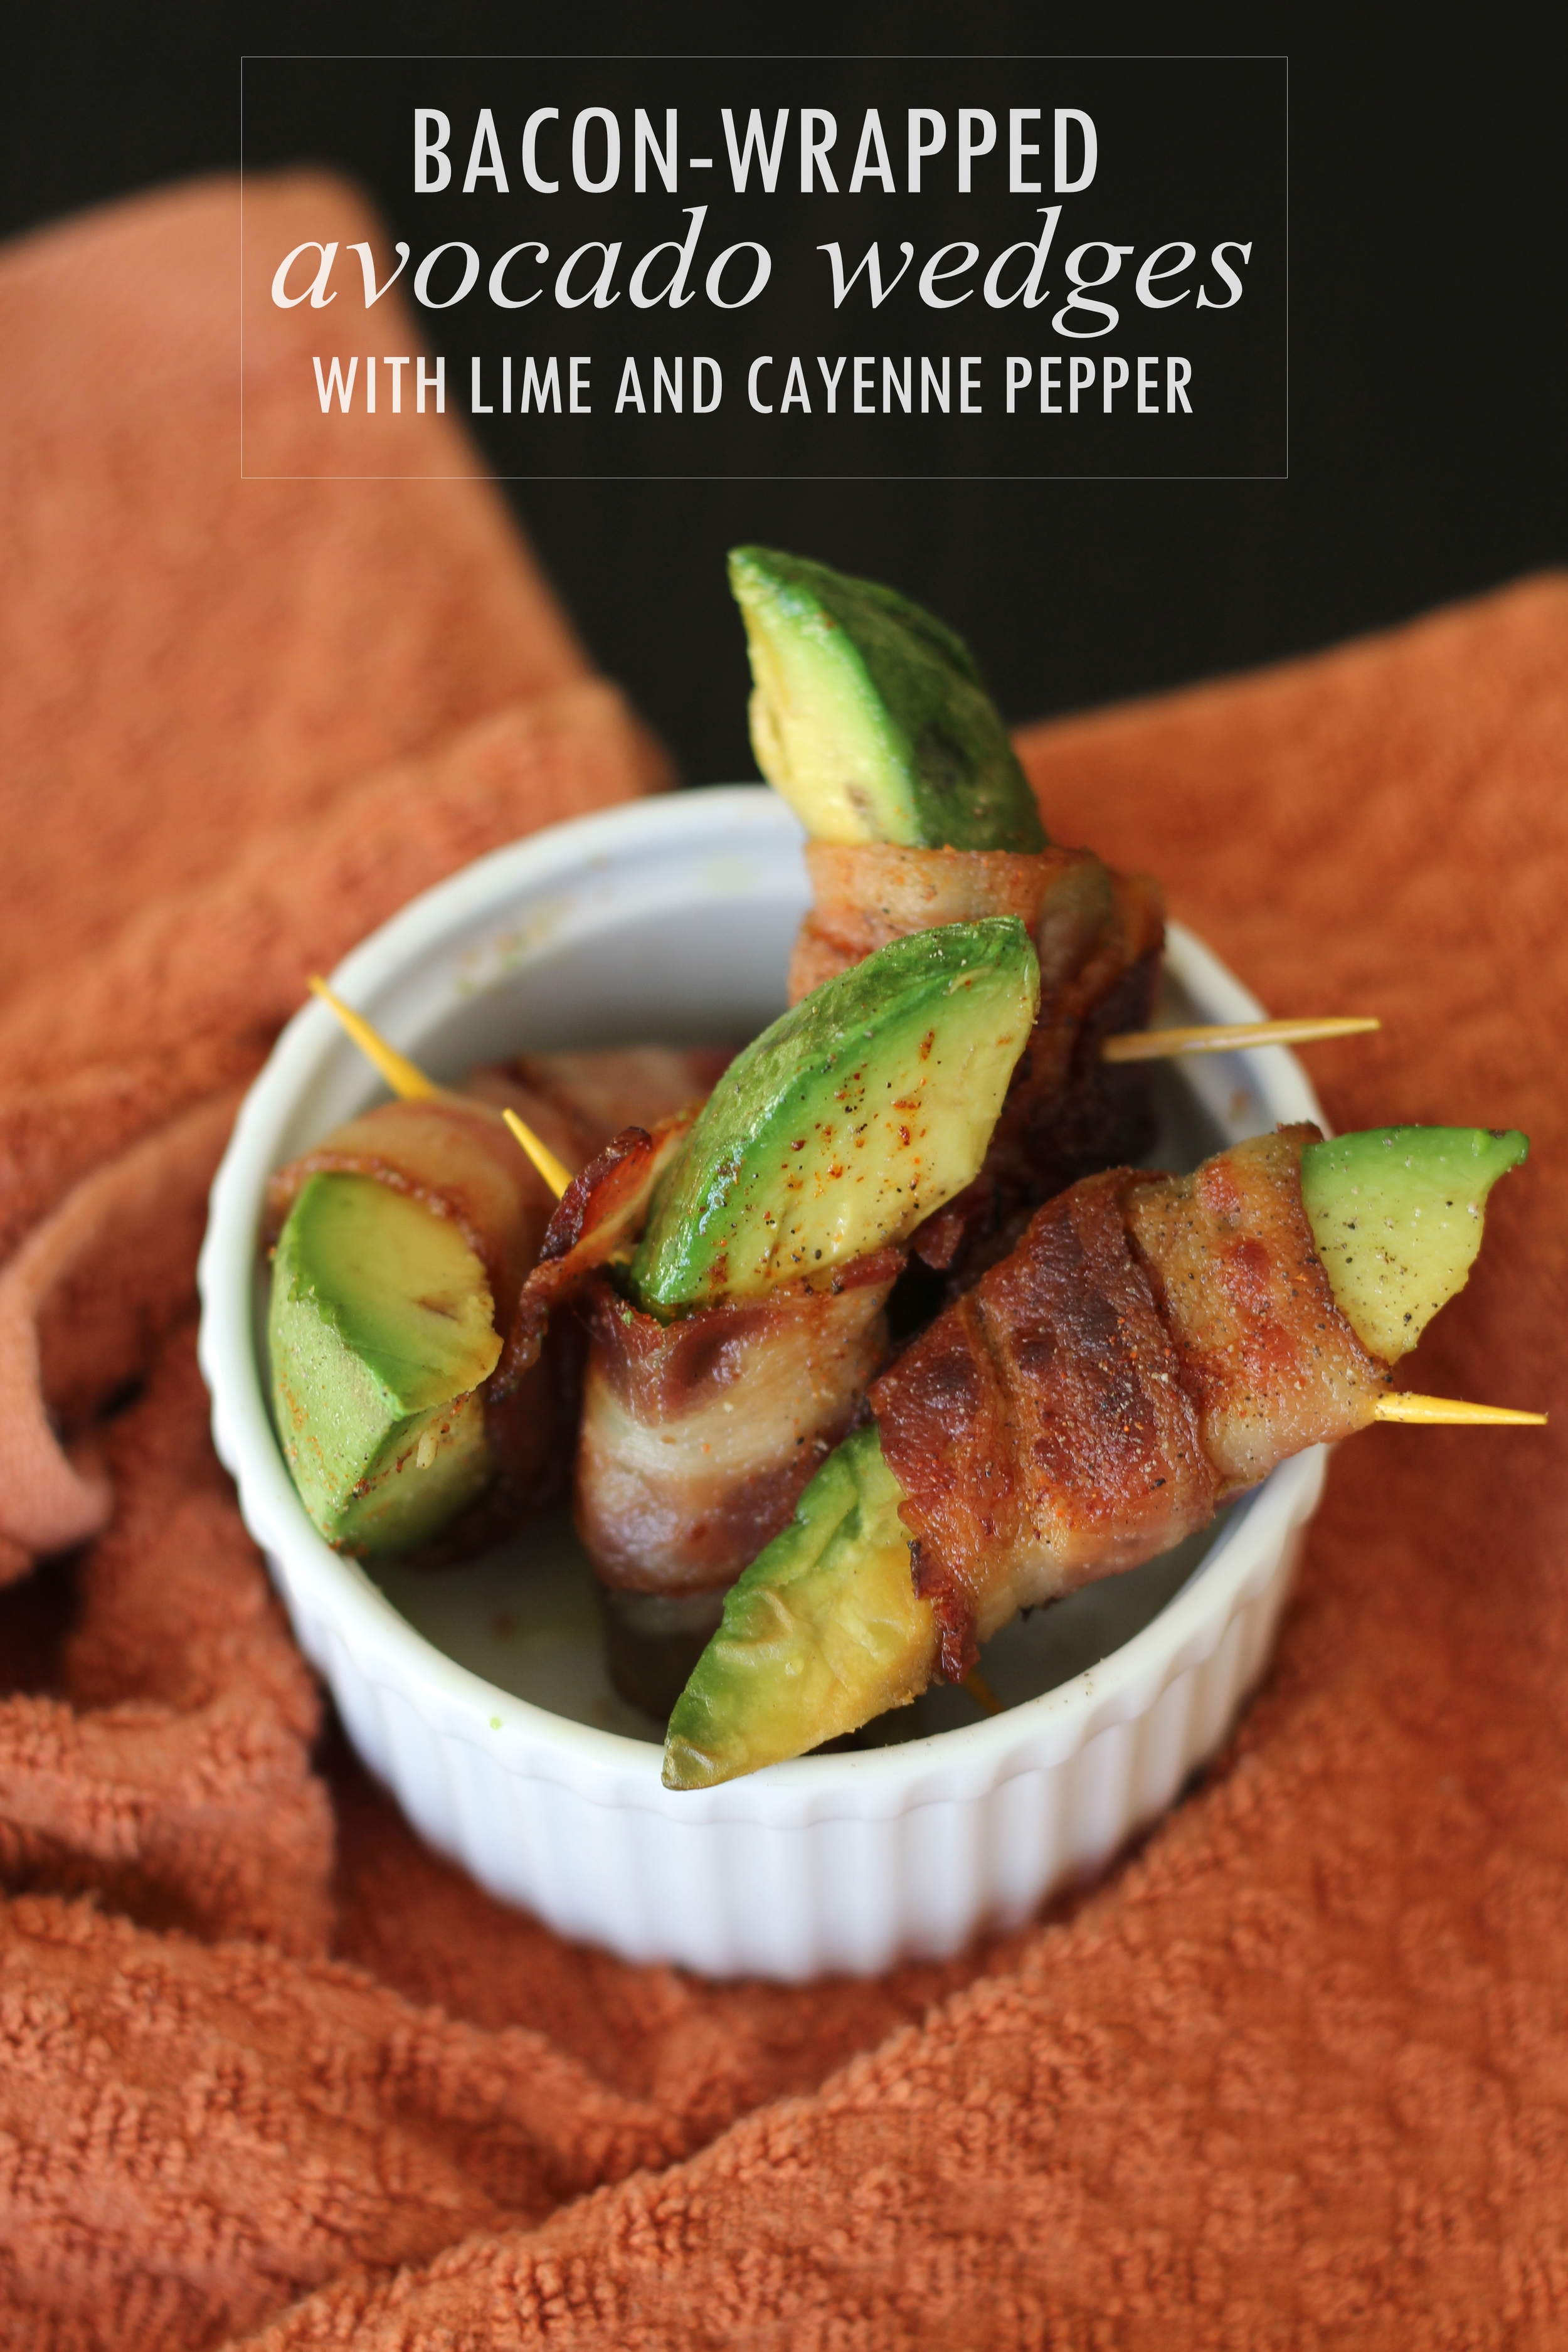 Bacon-Wrapped Avocado Wedges